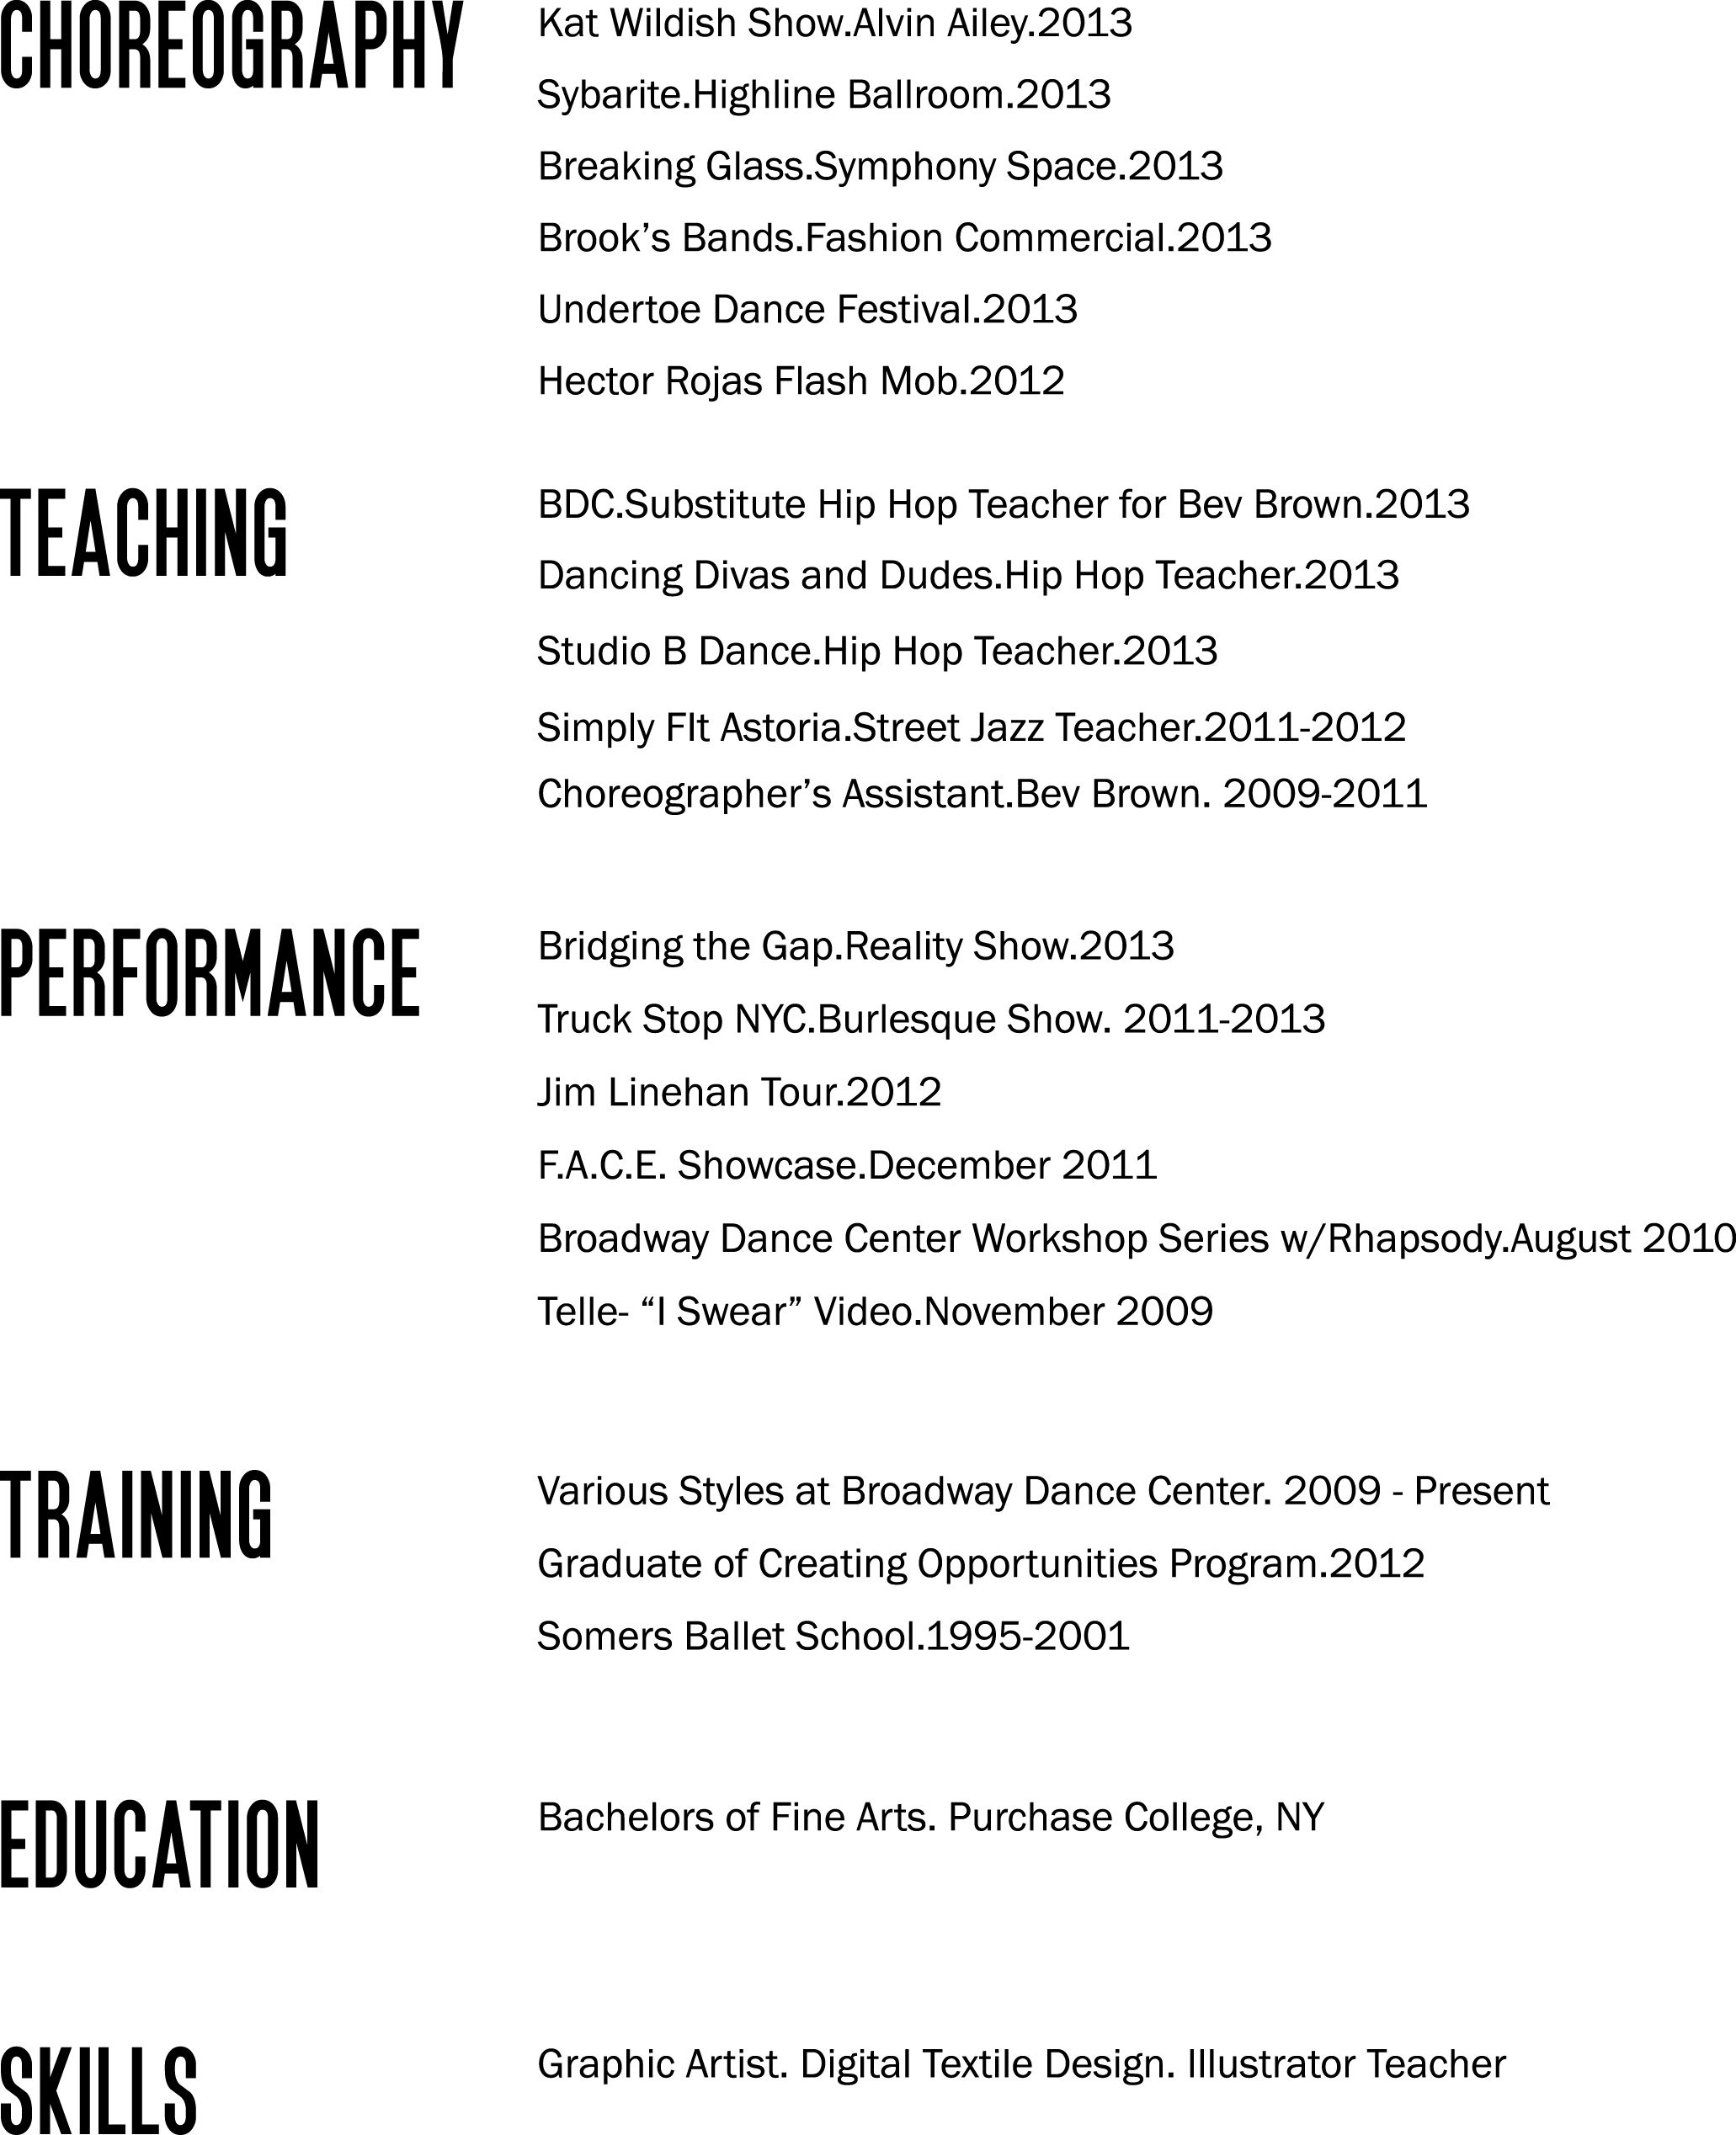 Dance Resume Examples Bad Layout But Good Reminder Of What To Put On A Dance Resume